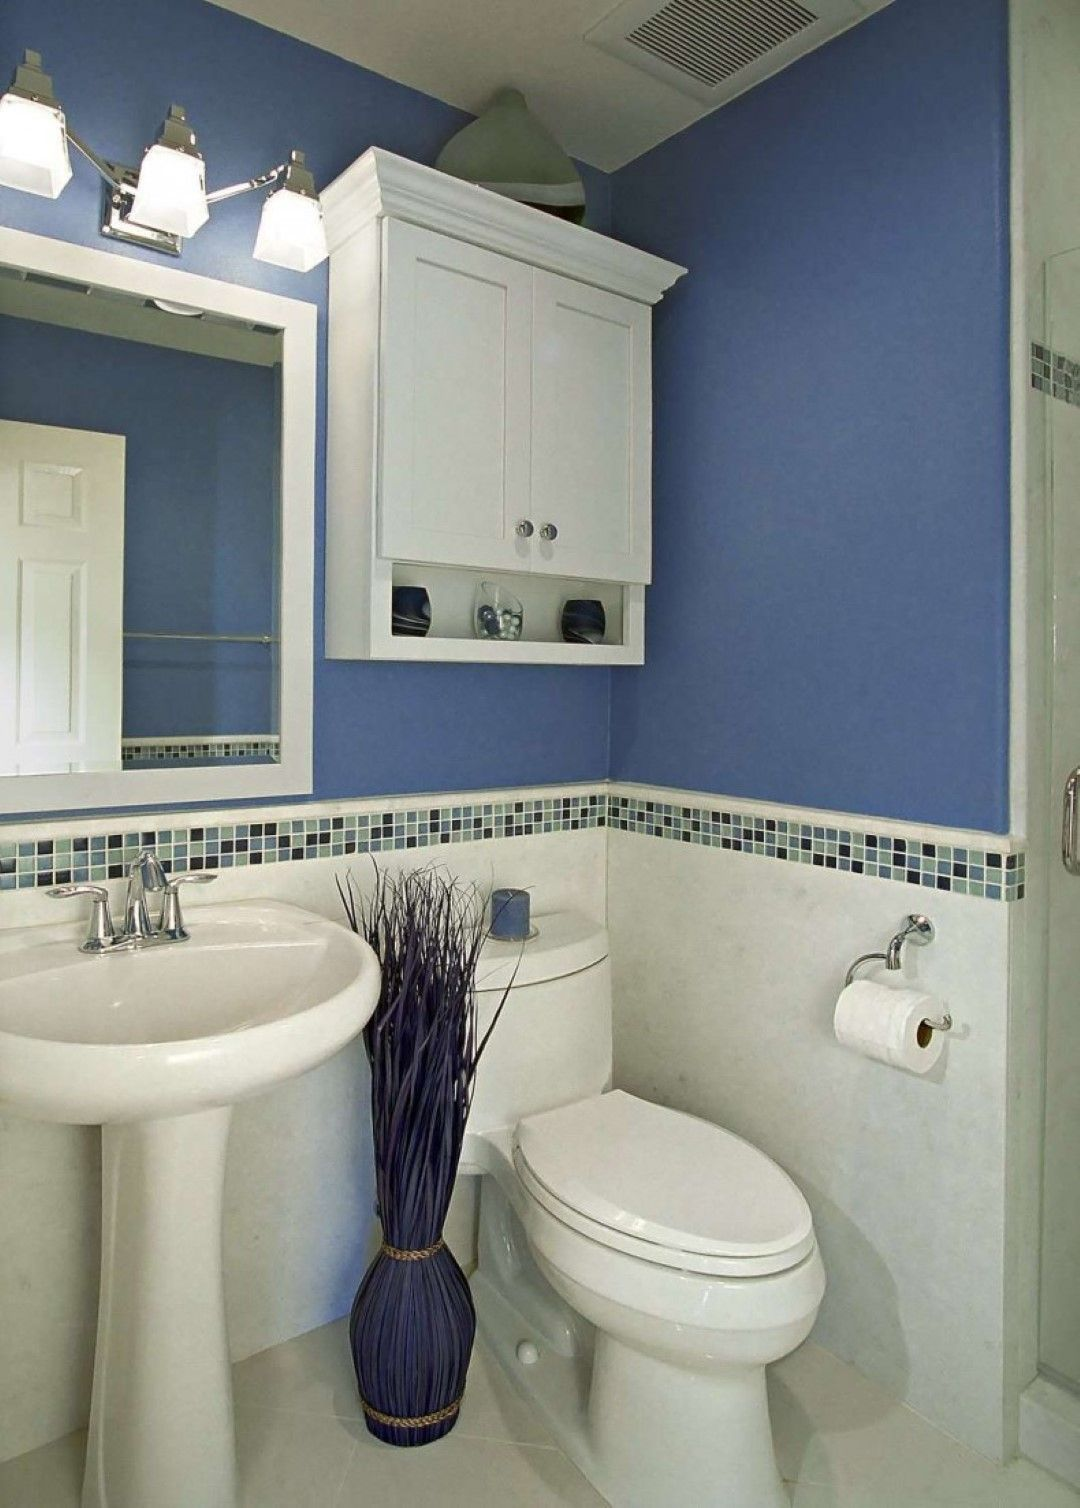 Bathroom mosaic backsplash tile idea feat stylish blue for Smart bathroom designs